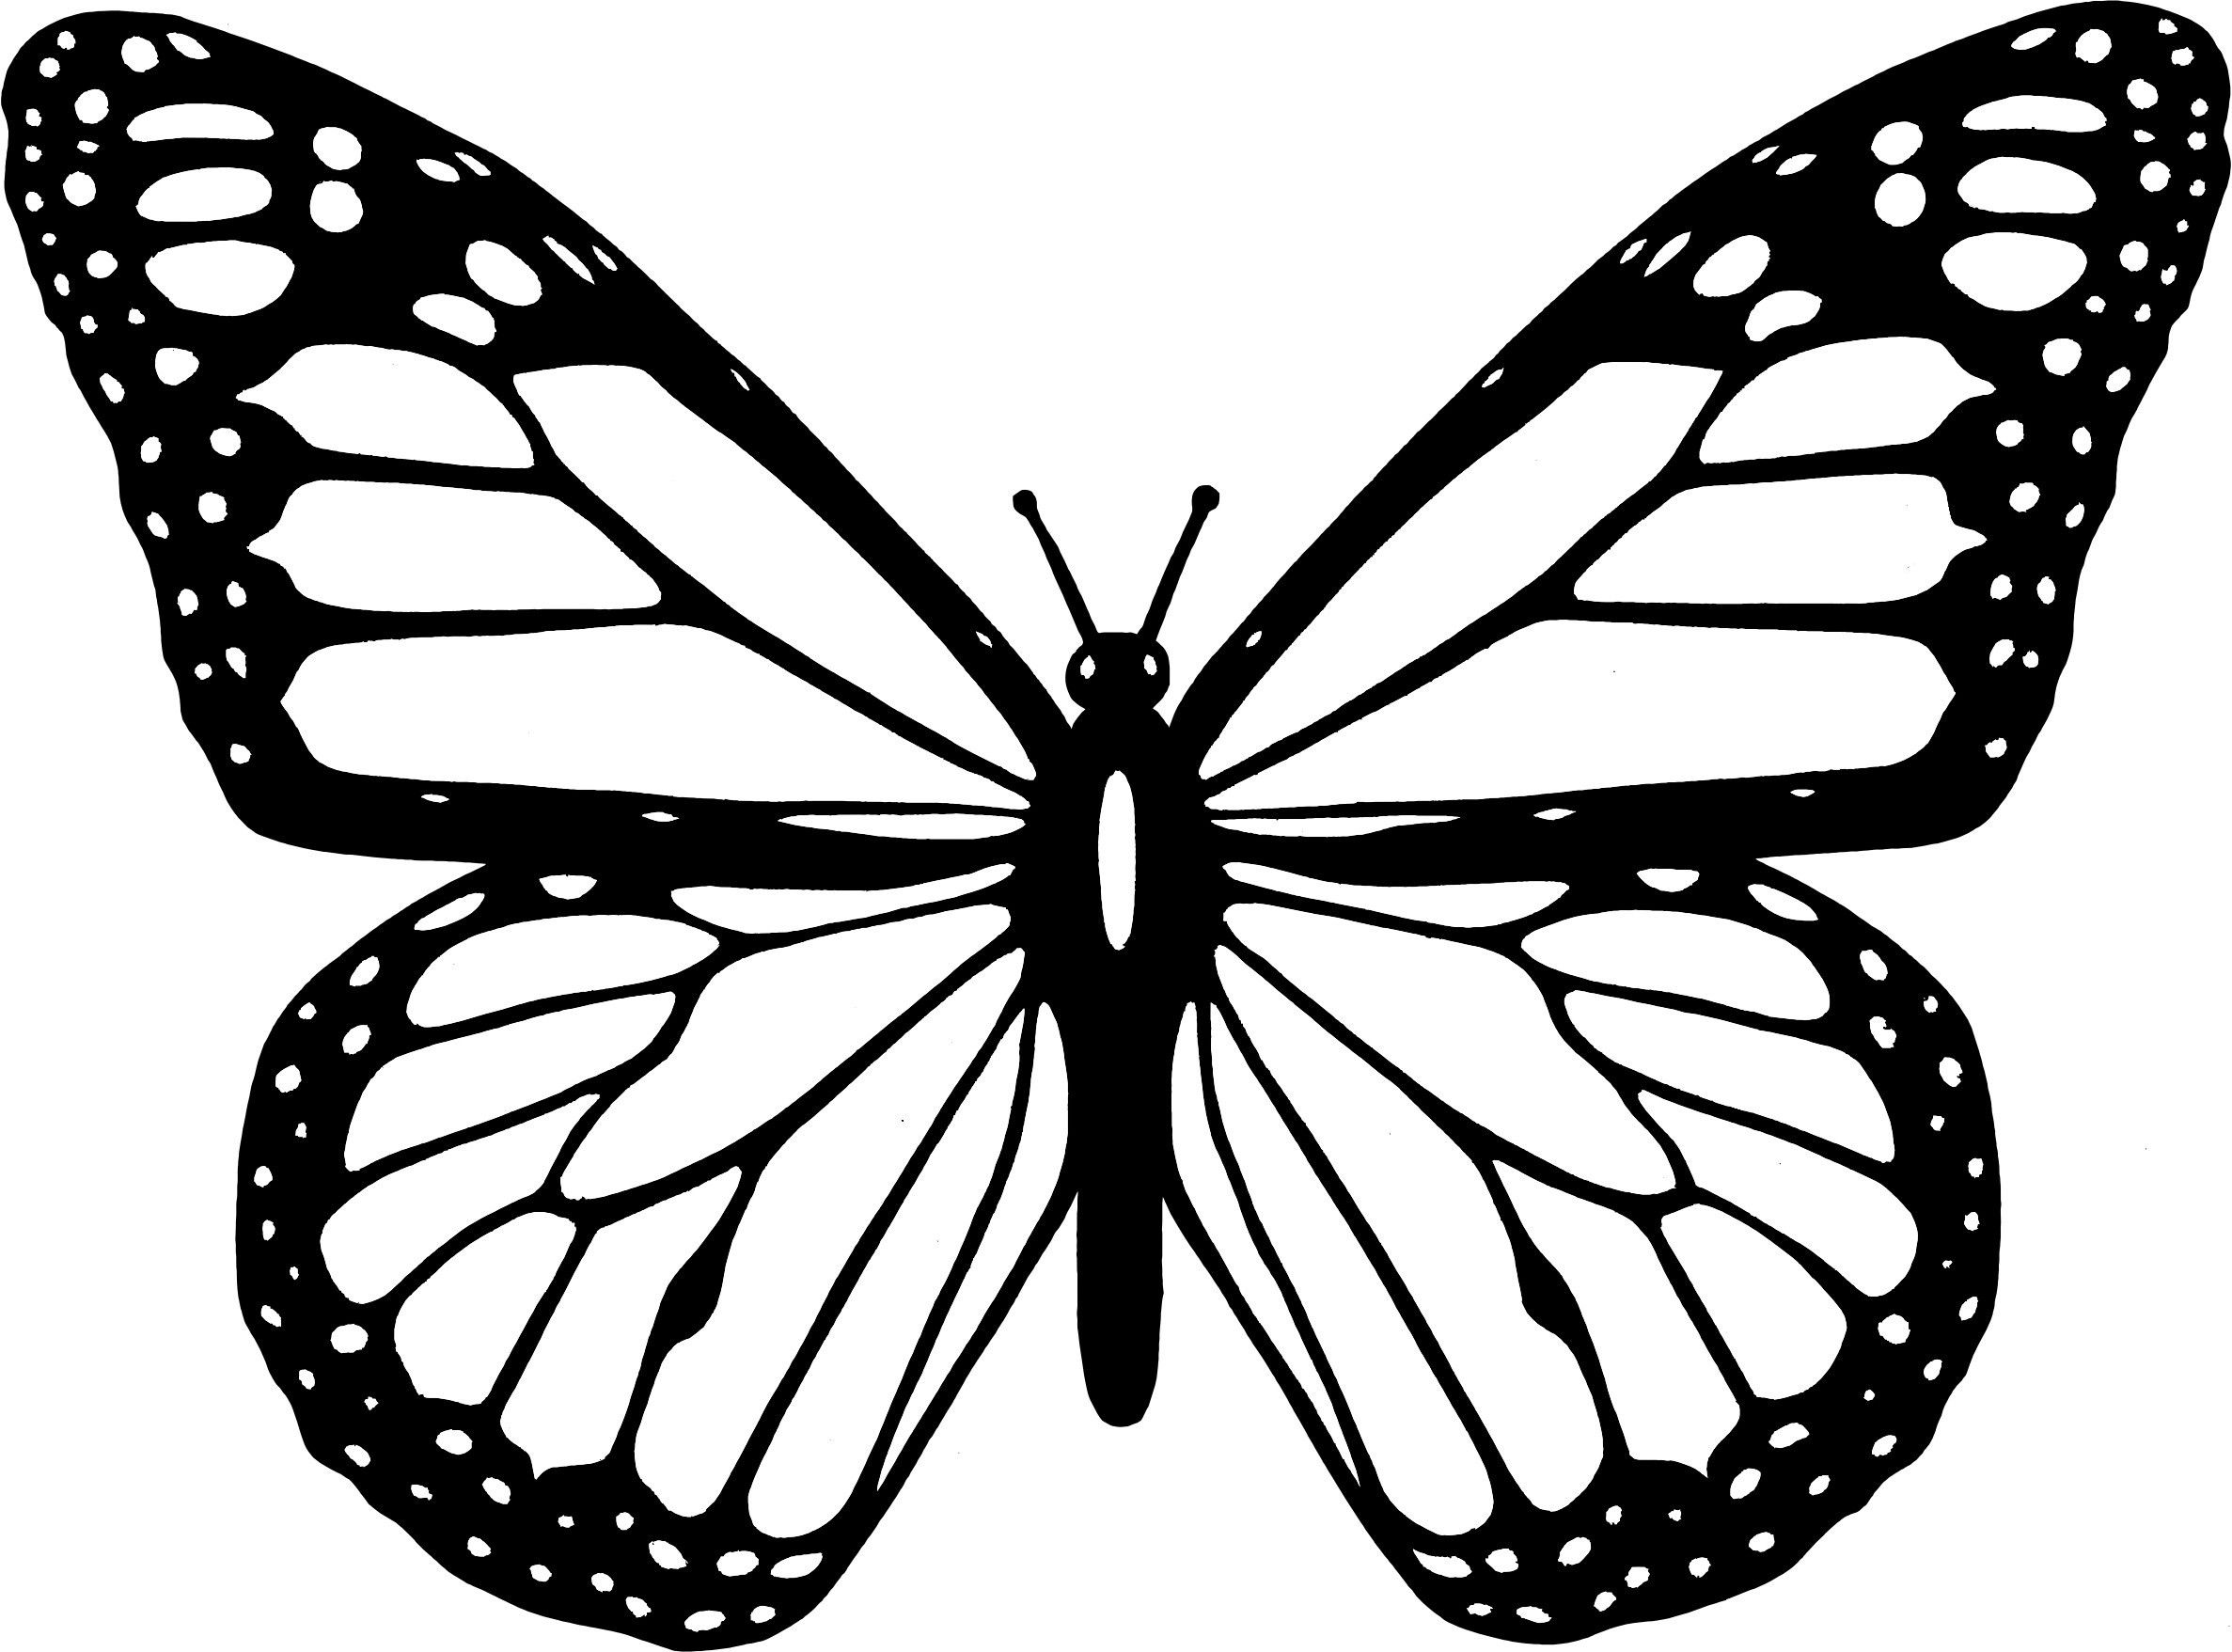 monarch butterfly outline butterfly clip art image by christina standiford on butterfly monarch outline